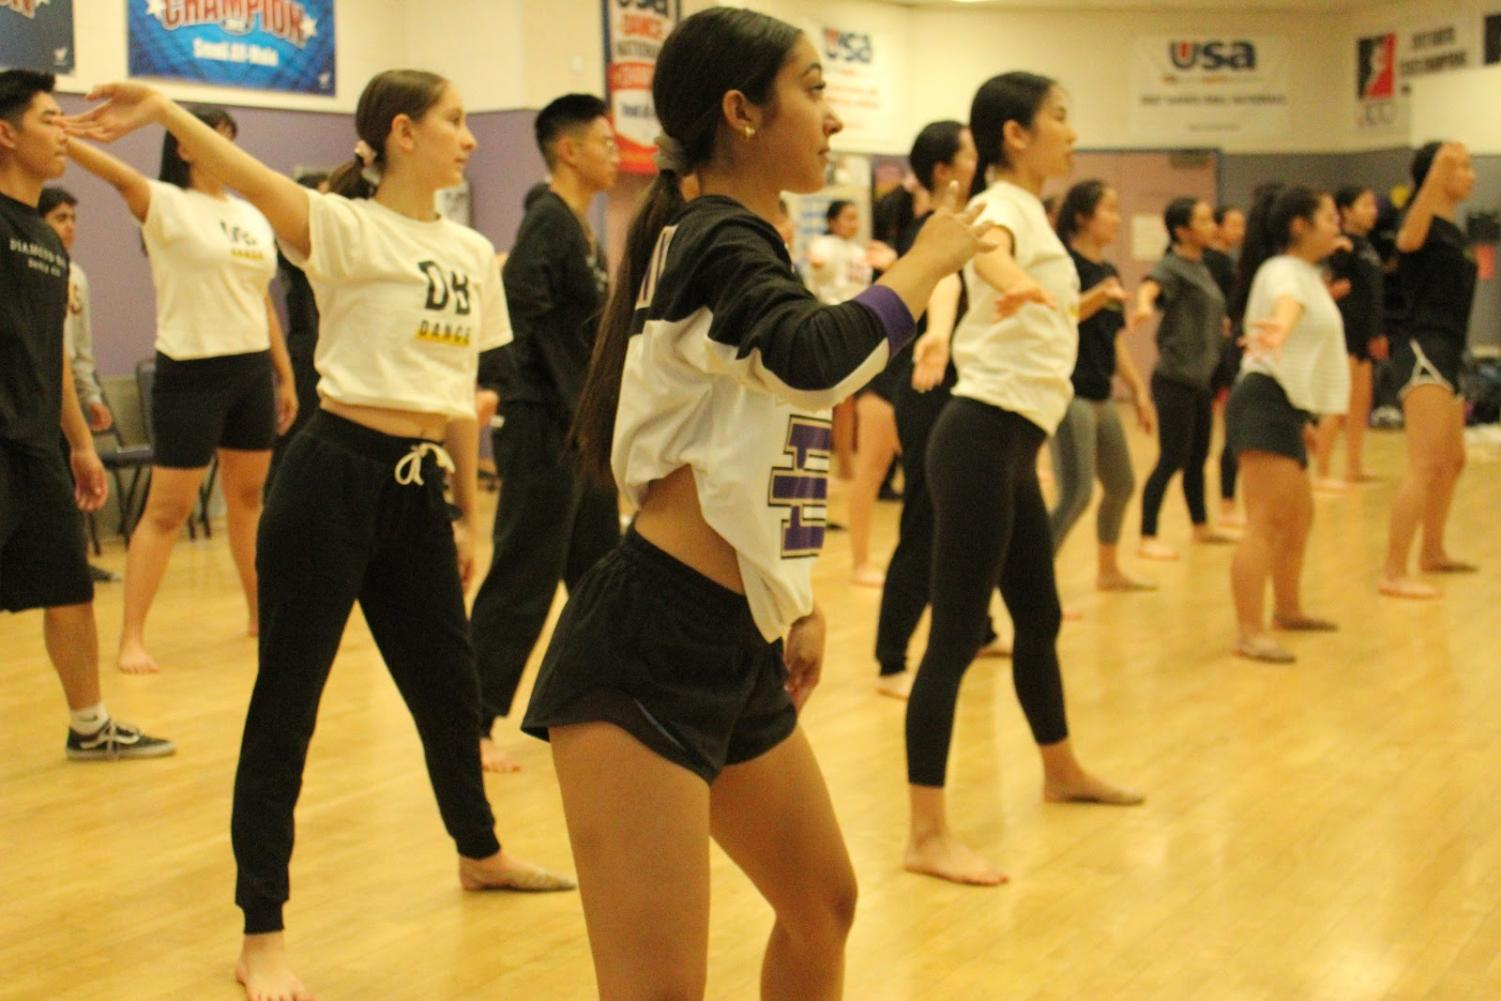 Members of the DBHS Dance Company will teach children at the youth camp.